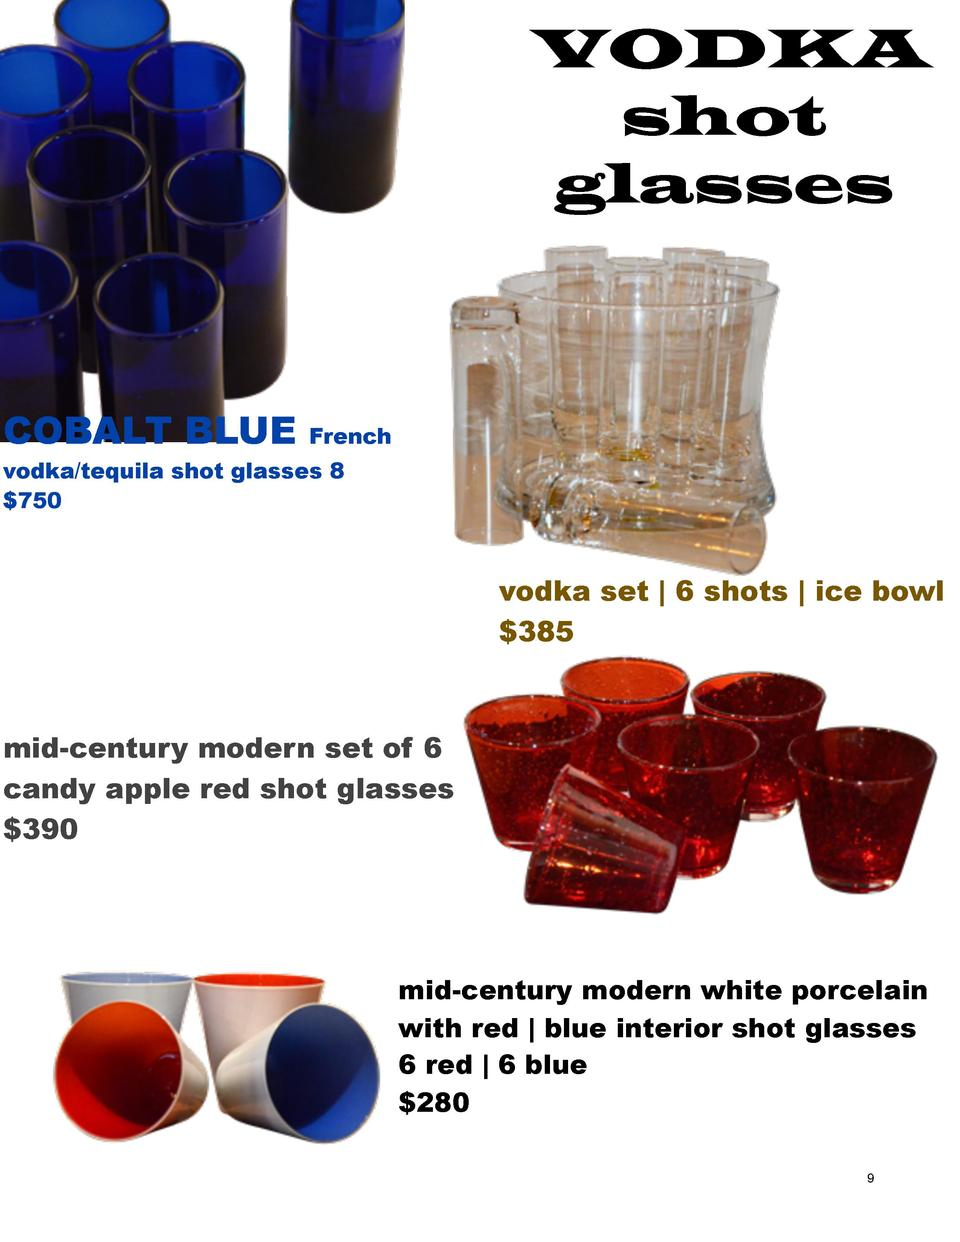 VODKA shot glasses  COBALT BLUE  French  vodka tequila shot glasses 8  750  vodka set   6 shots   ice bowl  385  mid-centu...